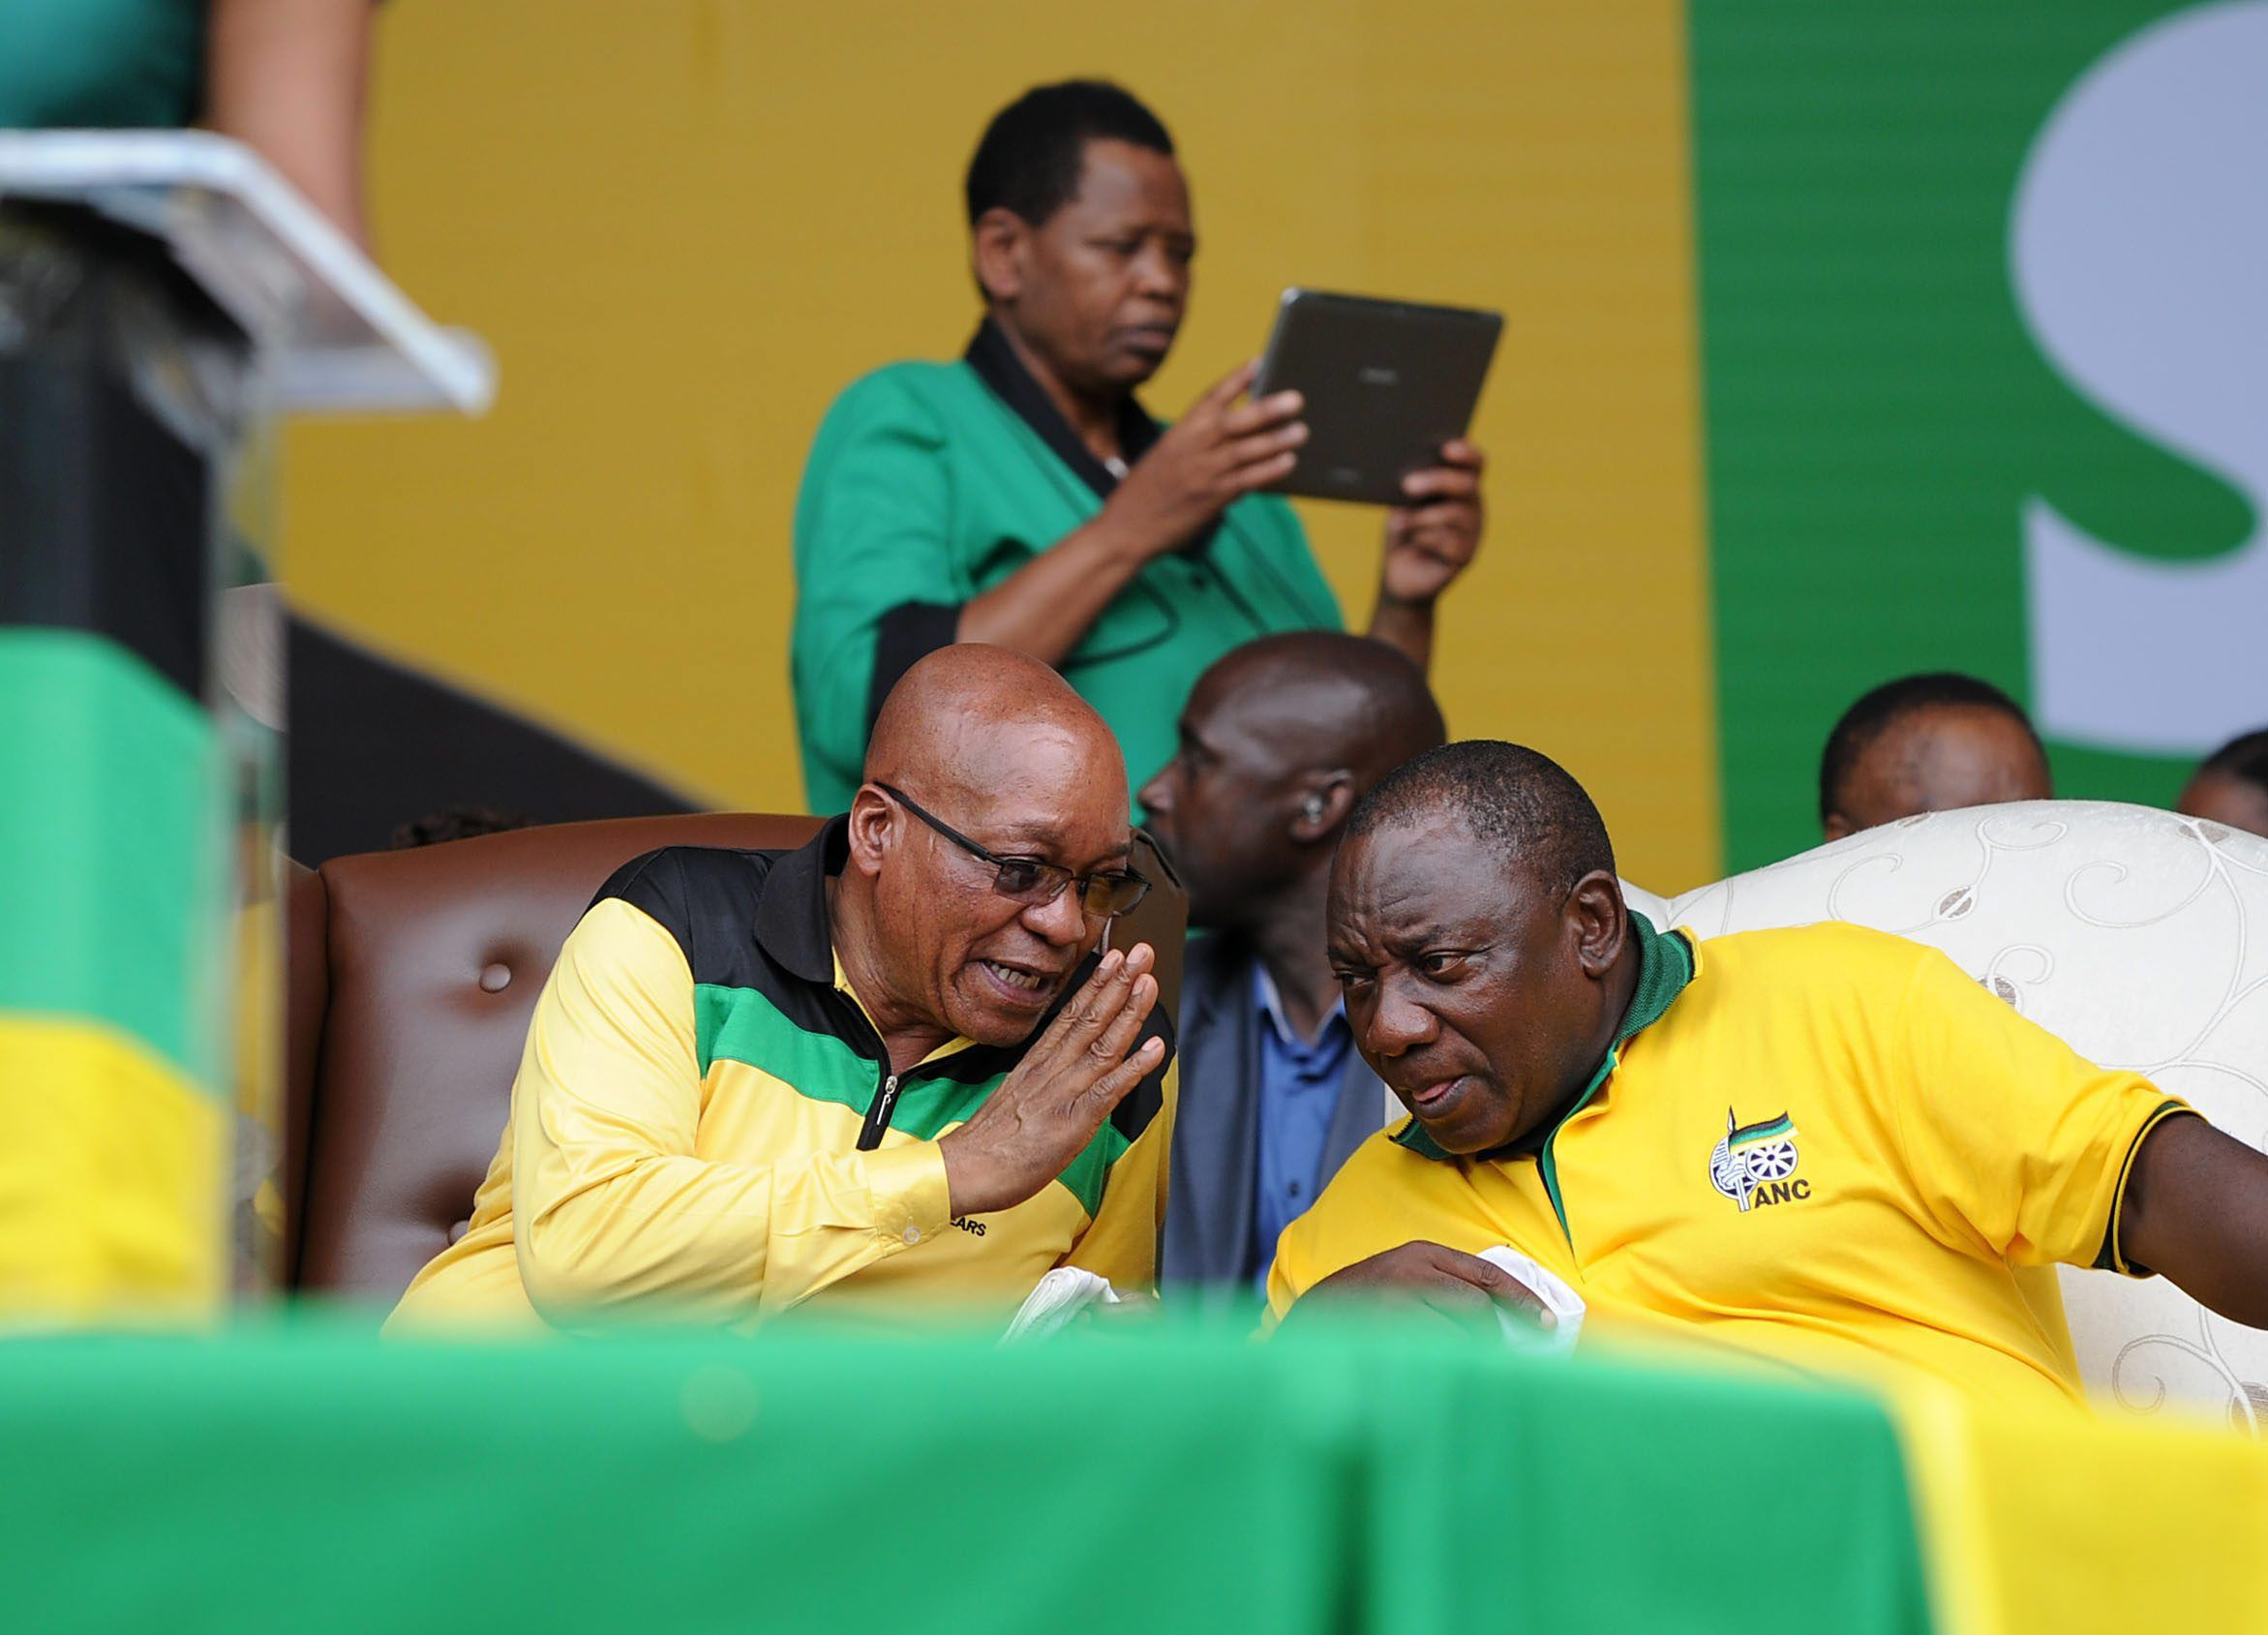 South African President Jacob Zuma said he's unconcerned about being booed in front of global leaders at a memorial event for Nelson Mandela last month as the ruling African National Congress prepares for an election win.  To read the full story click here: http://www.iol.co.za/business/news/zuma-unconcerned-by-jeering-1.1630956#.UtPY0KJN-lg